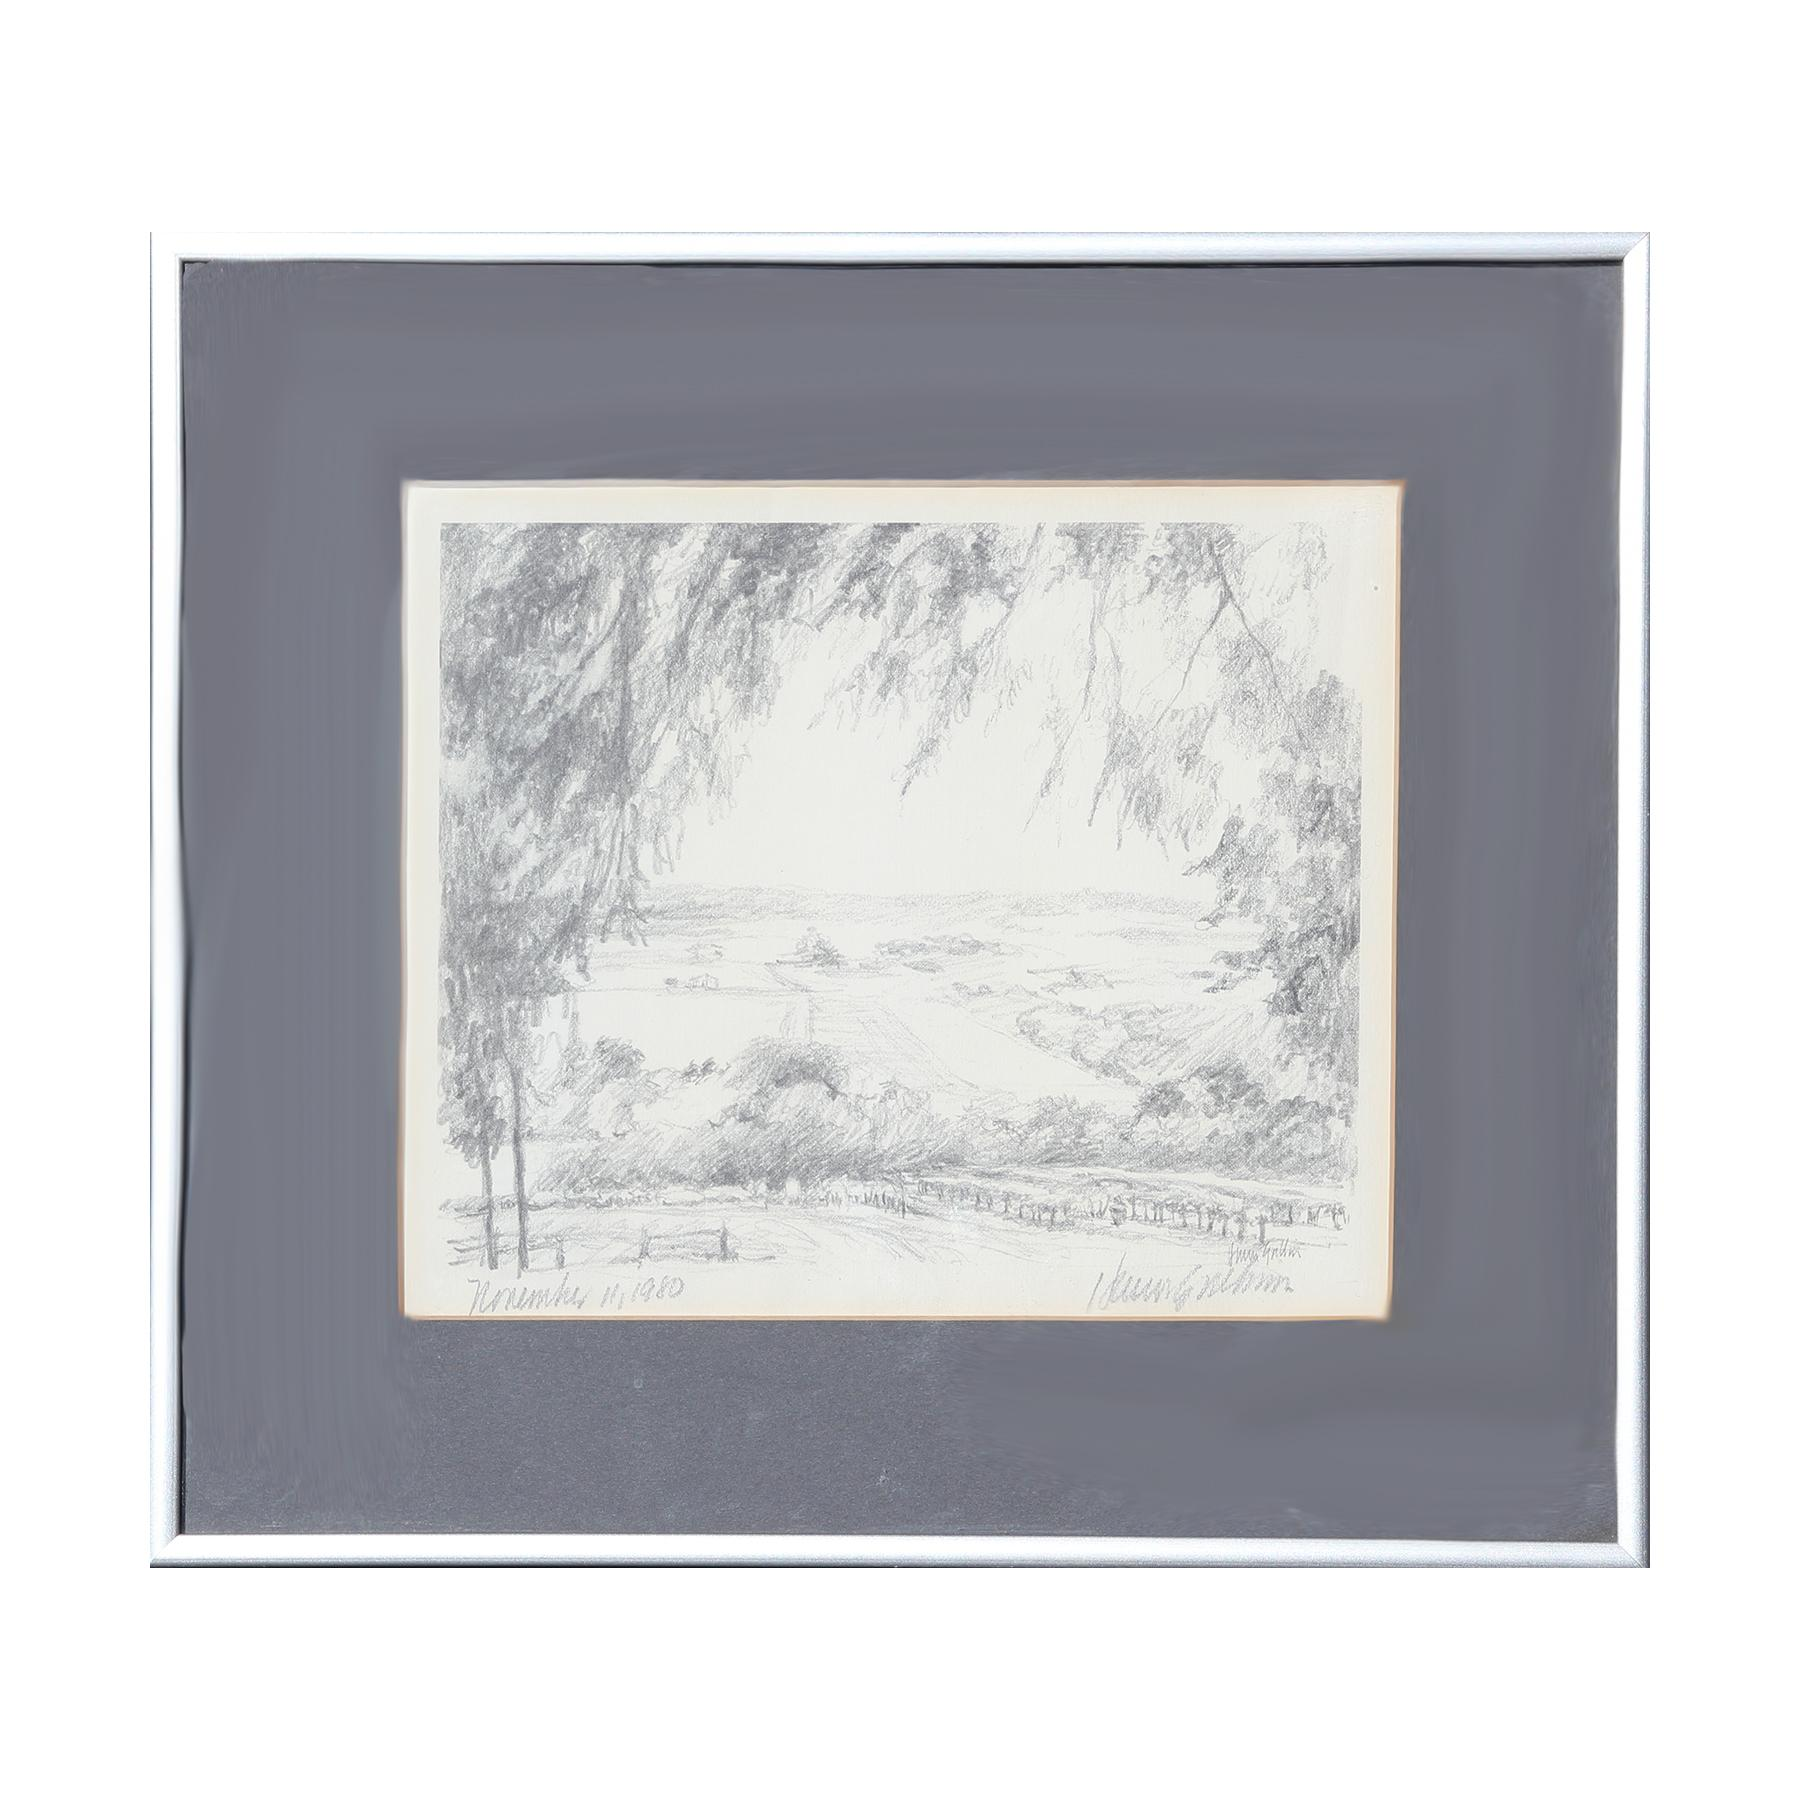 Naturalistic Grey View of a Field Photo Print Proof of Abstract Pencil Drawing